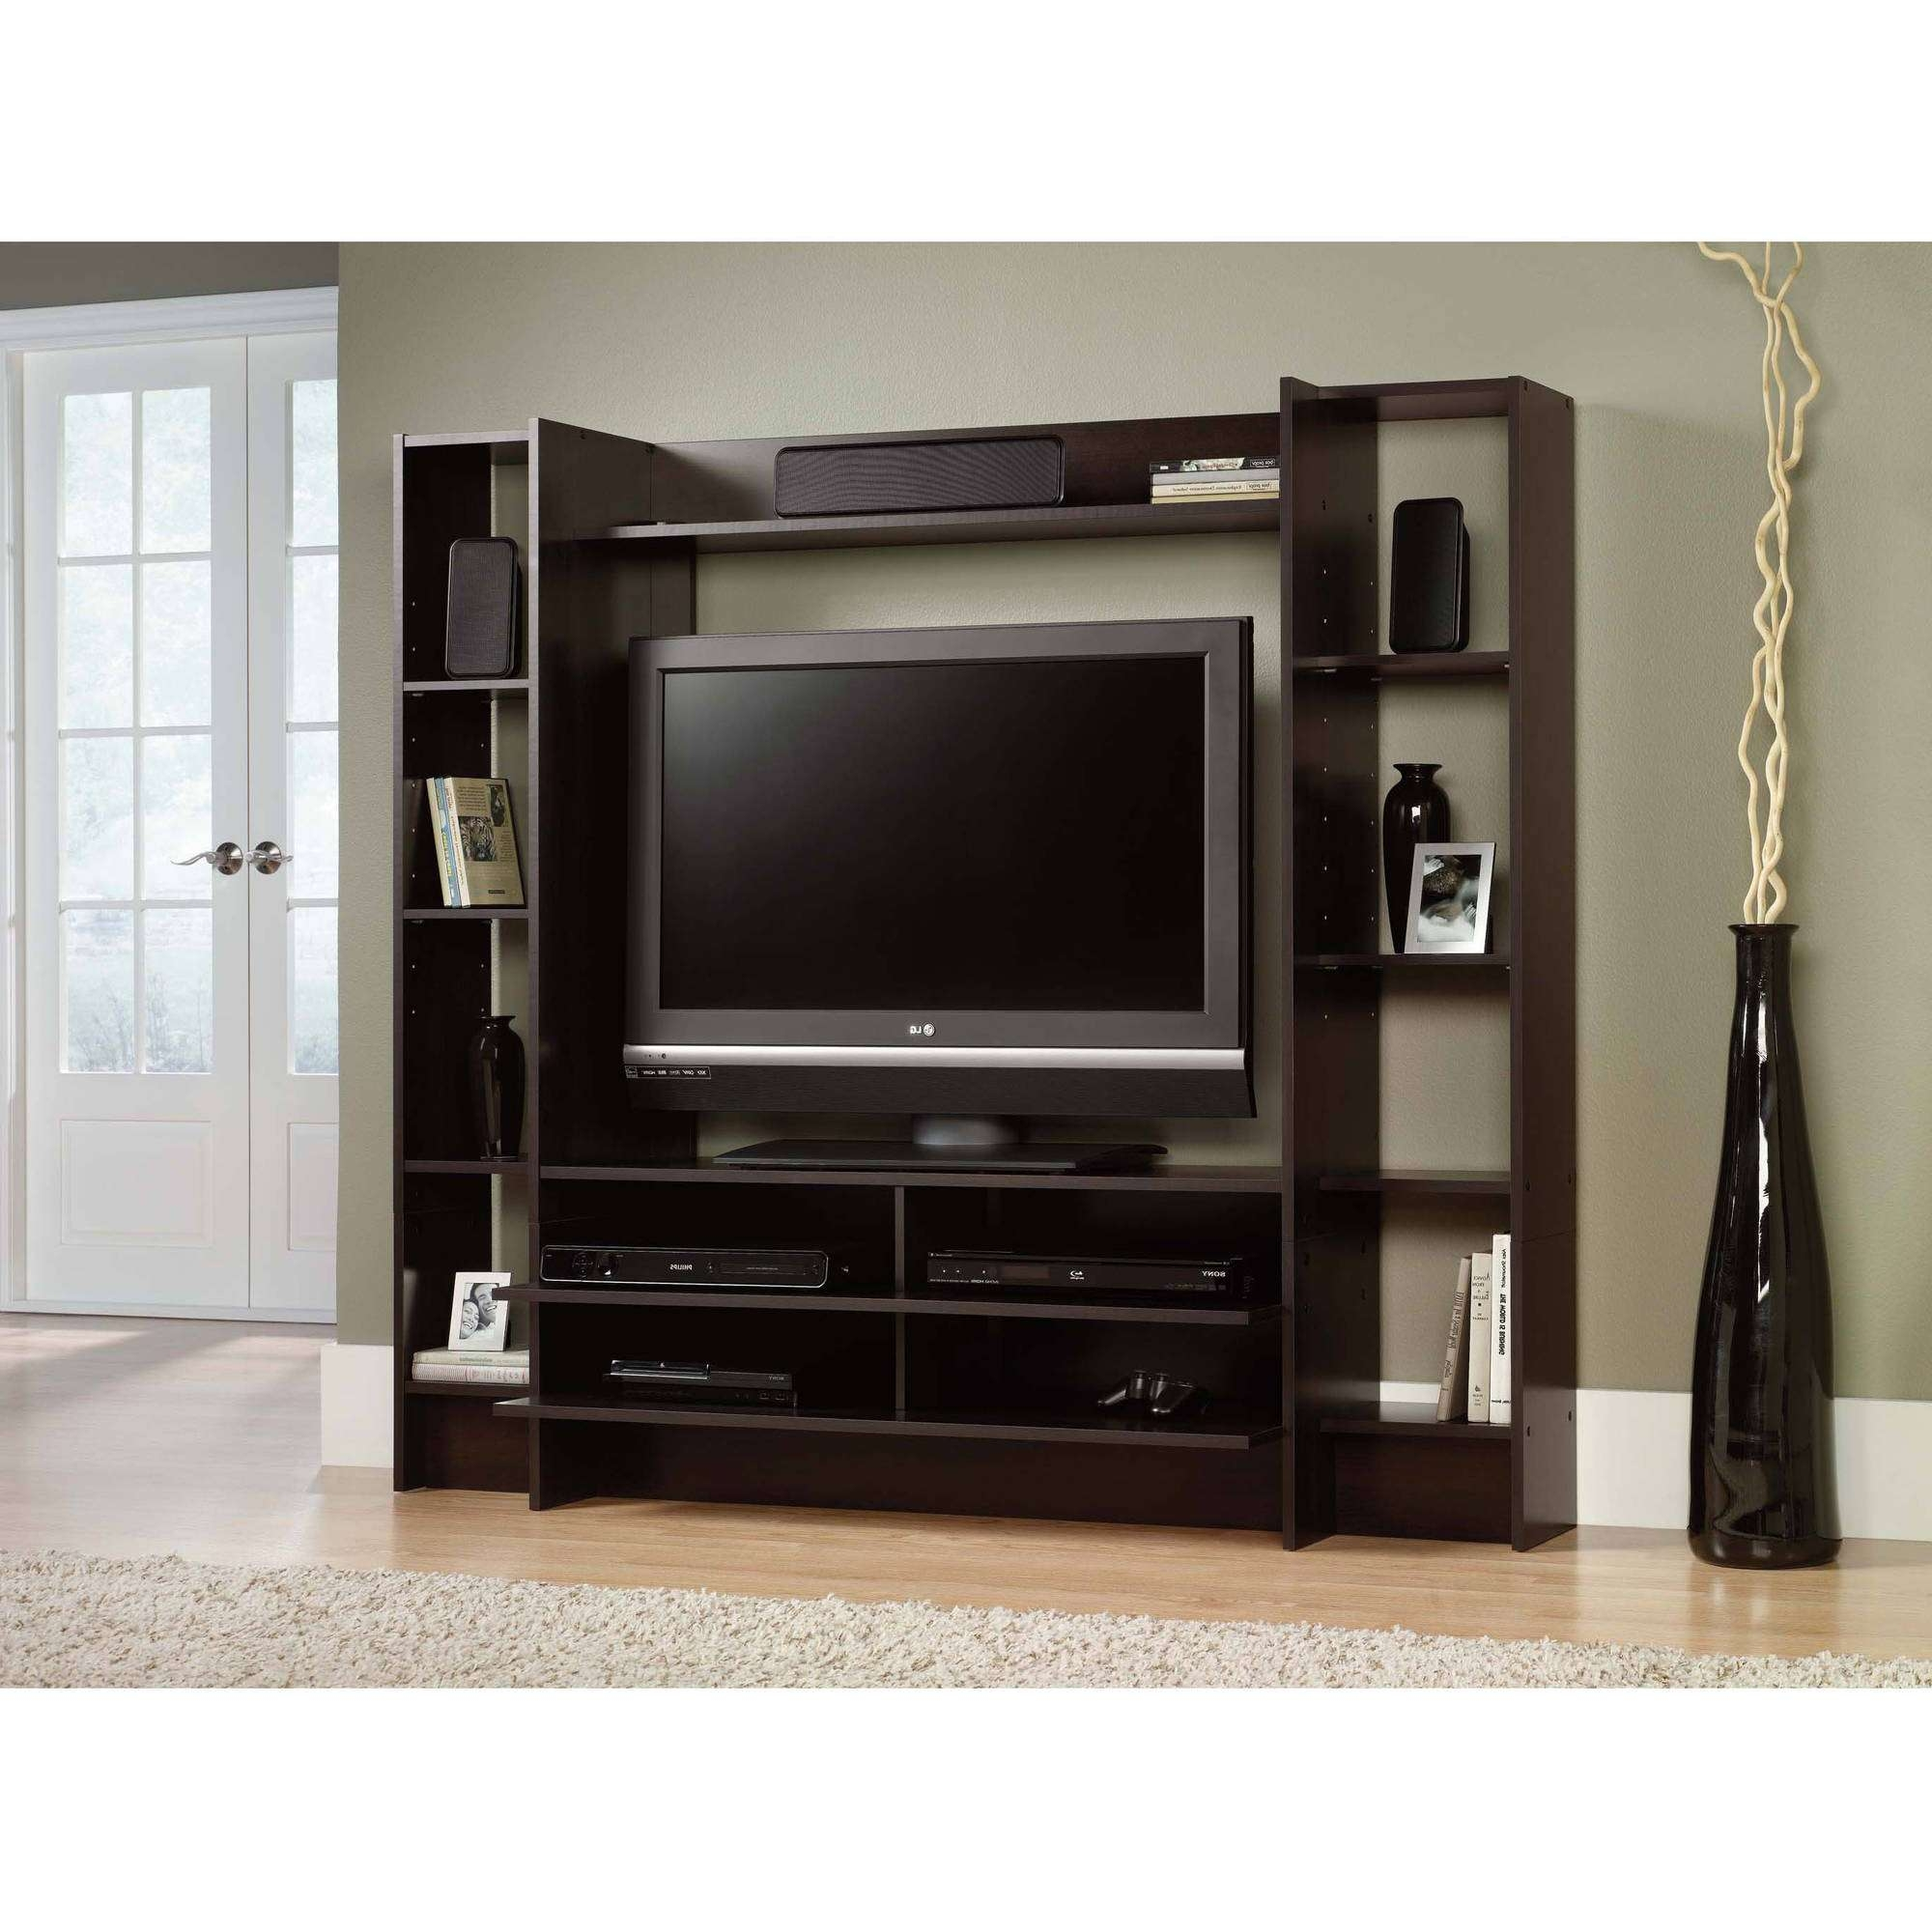 Tv Stands & Entertainment Centers – Walmart With Regard To Tv Cabinets (View 17 of 20)